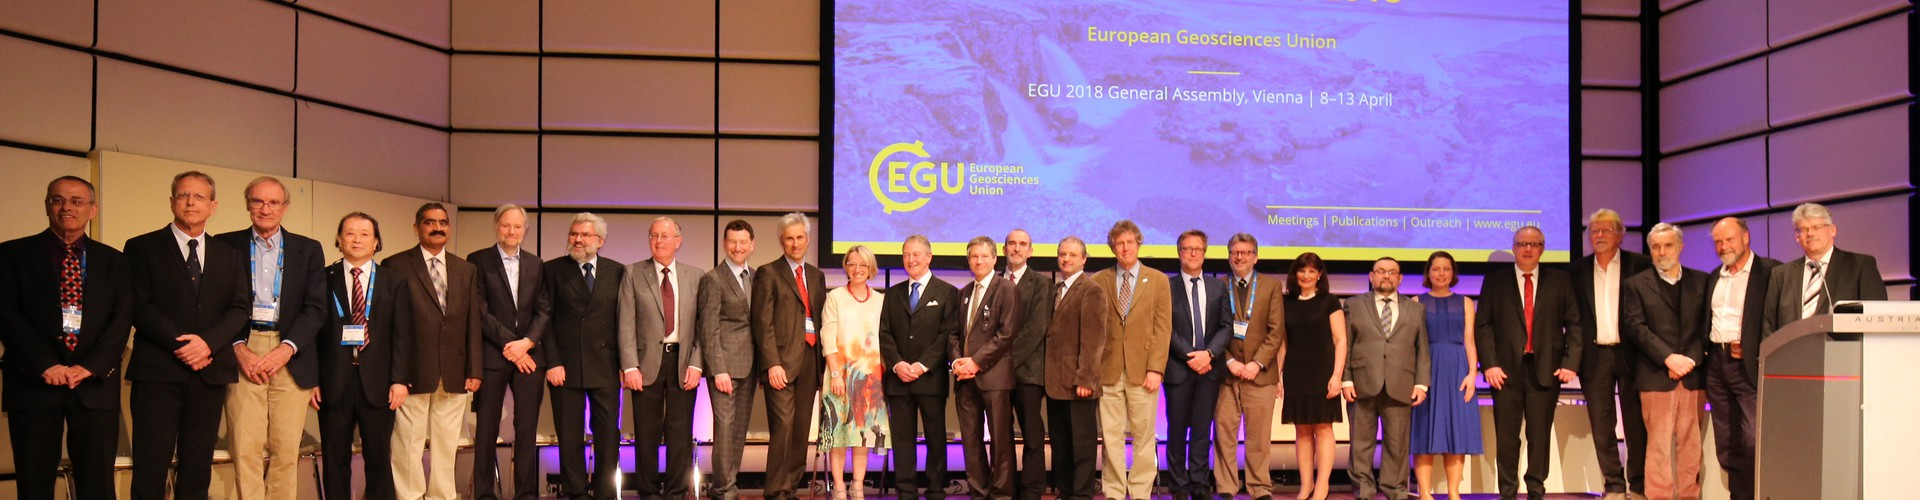 Some of last year's awardees with the EGU President and Vice-President at the EGU 2018 Awards Ceremony (Credit: EGU/Foto Pfluegl)